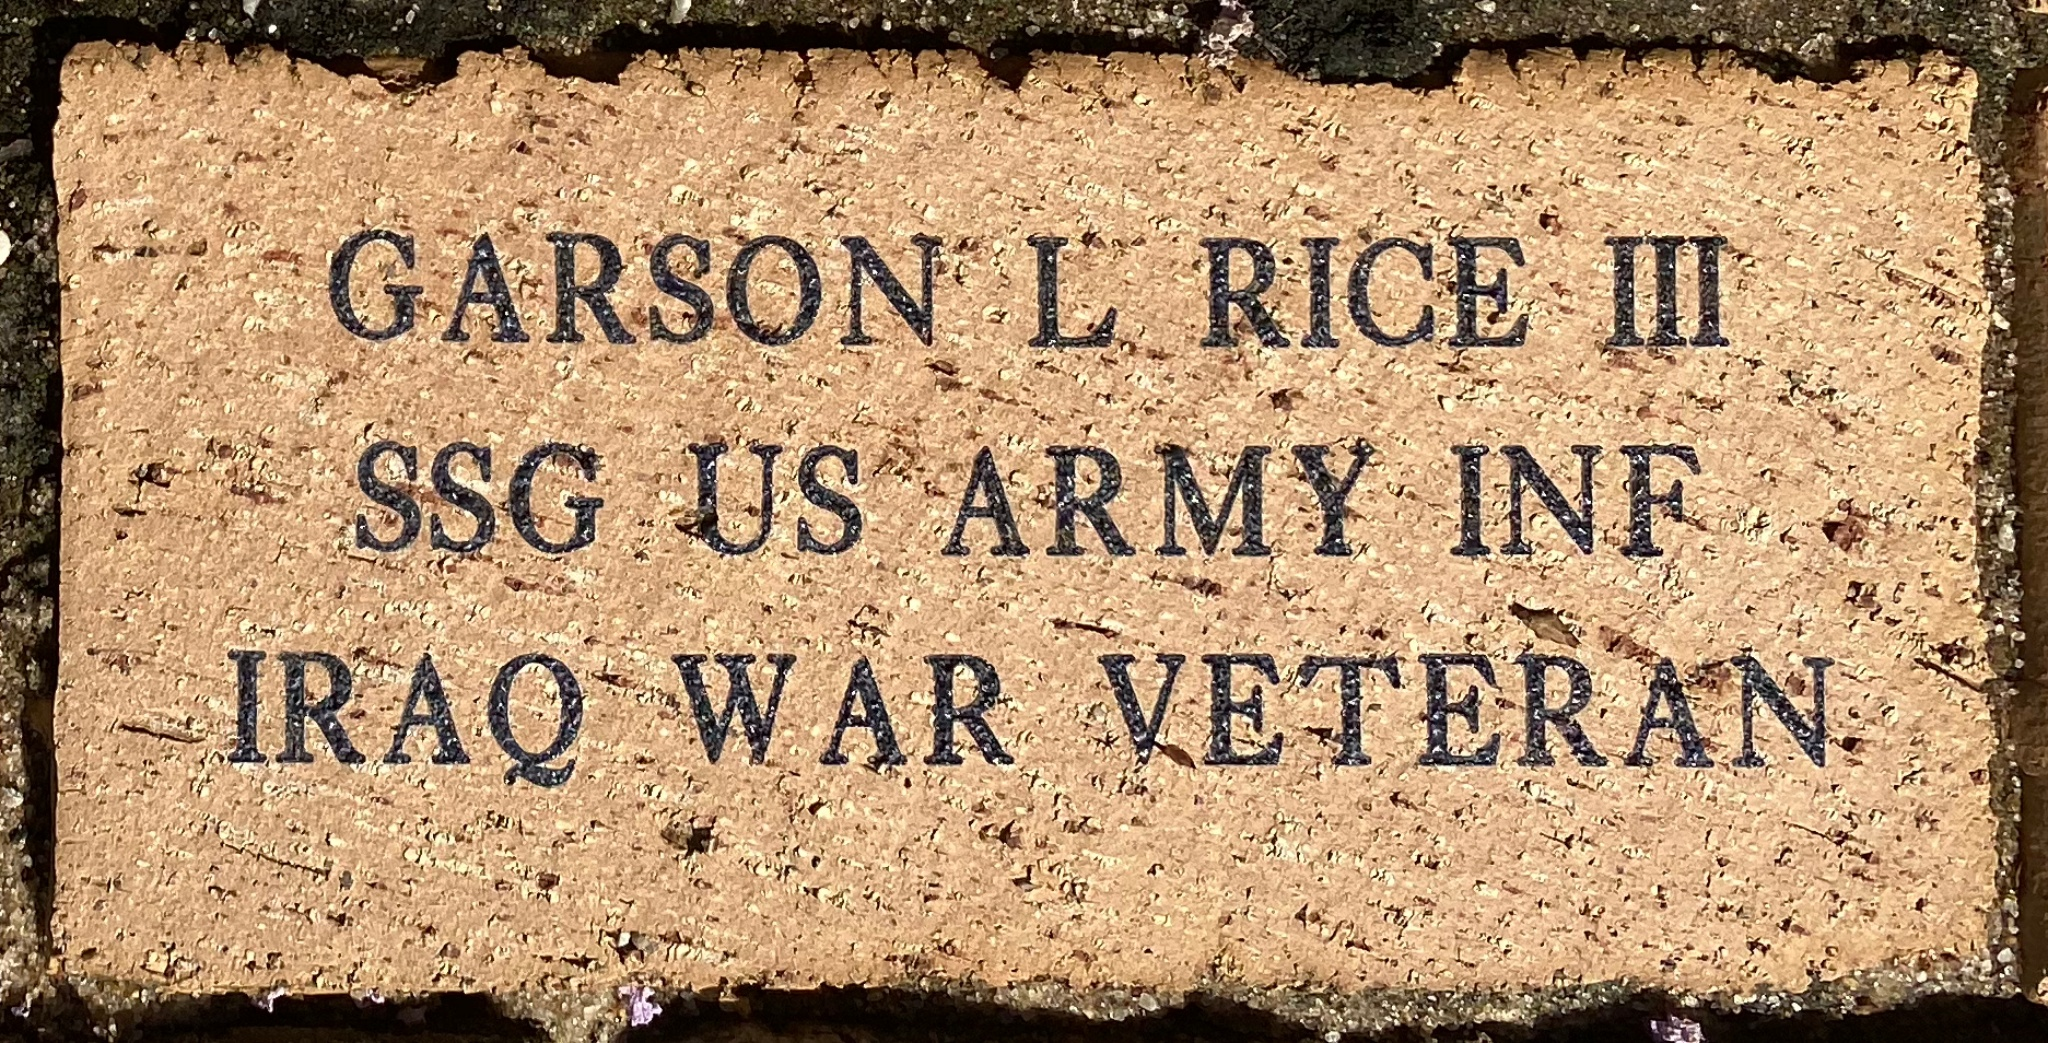 GARSON L RICE III SSG US ARMY INF IRAQ WAR VETERAN